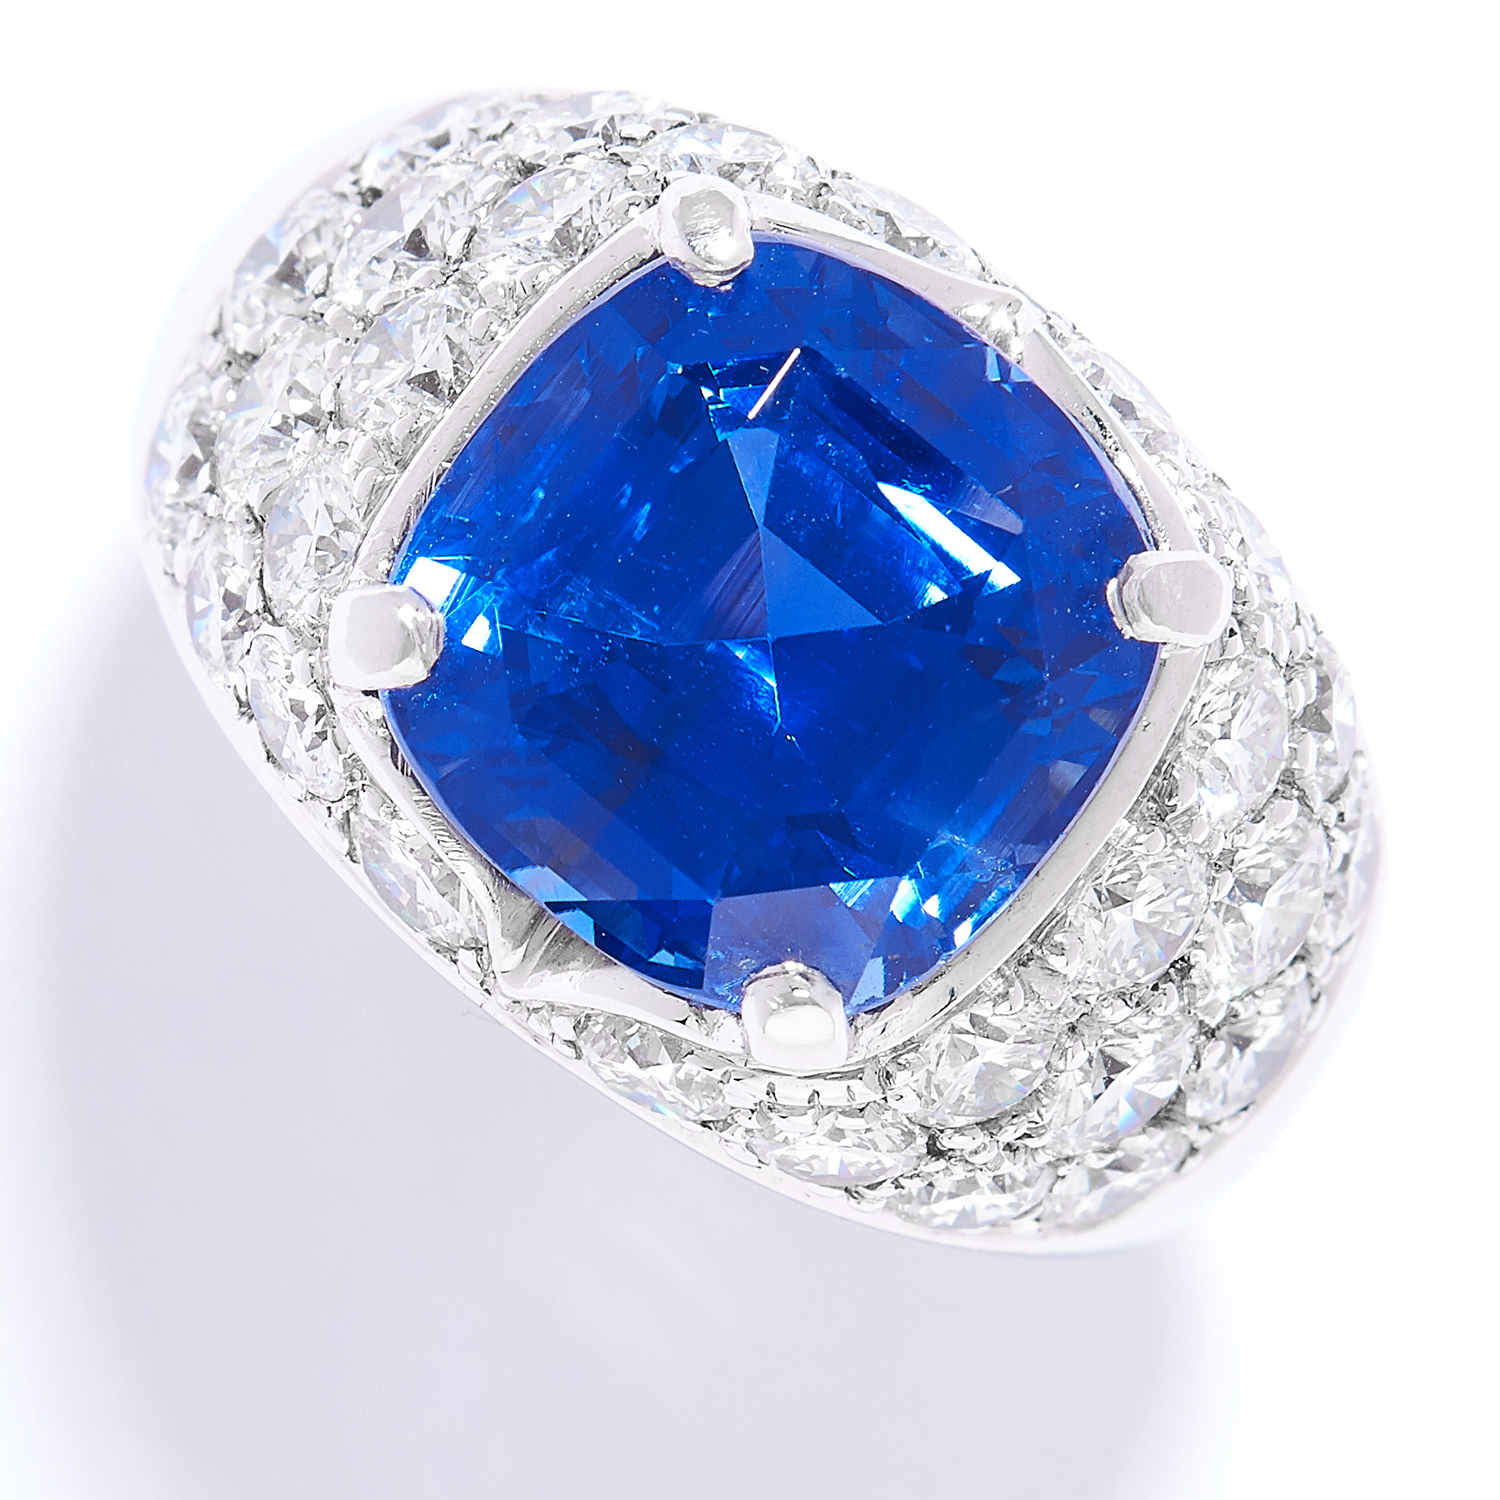 9.46 CARAT SAPPHIRE AND DIAMOND RING in 18ct white gold or platinum, comprising of a cushion cut